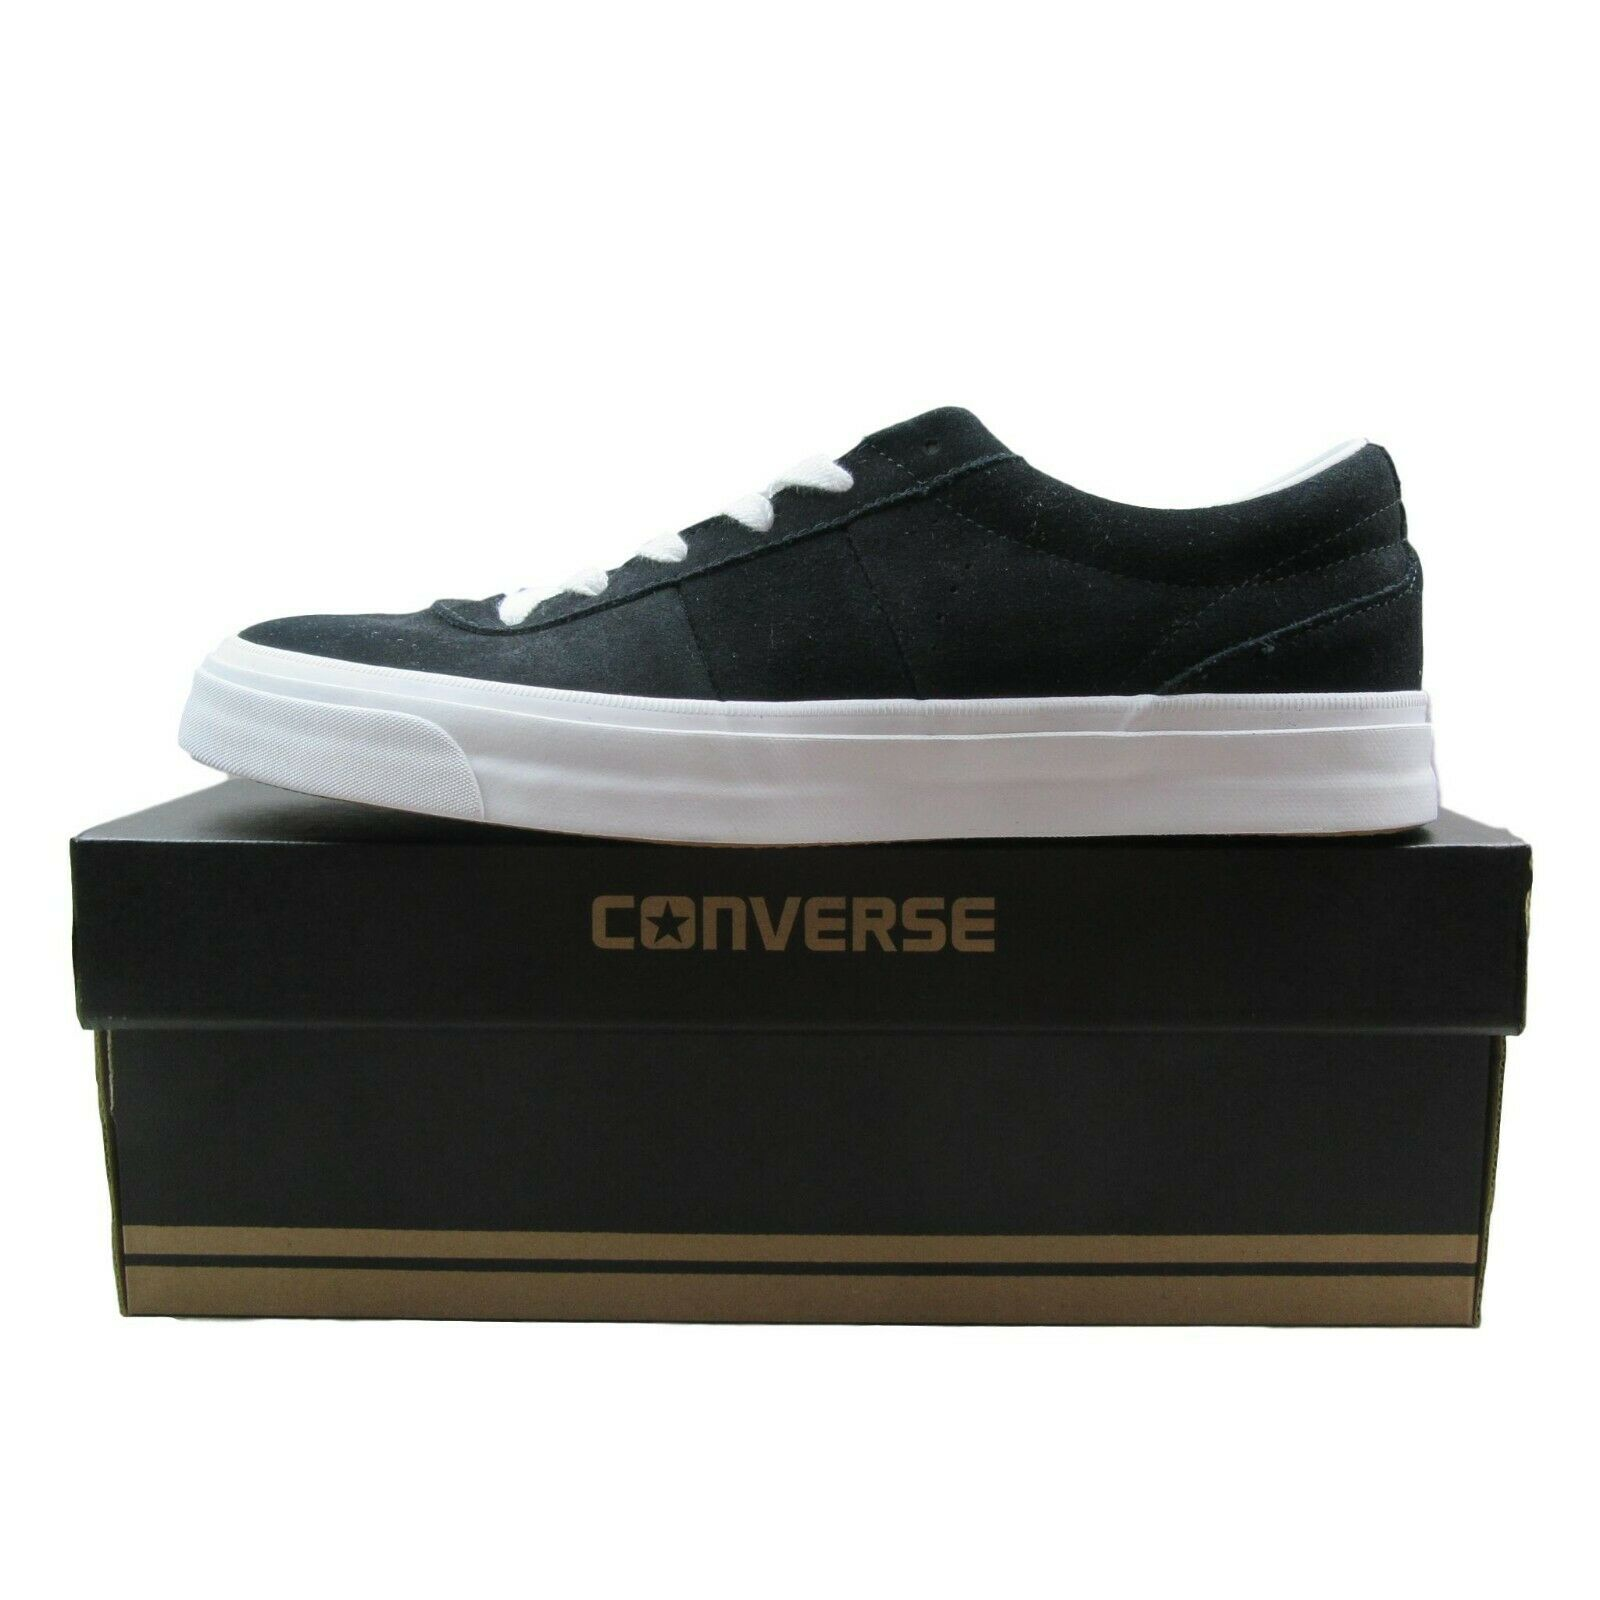 Converse Skate One Star CC Ox Black Sneakers 155578C